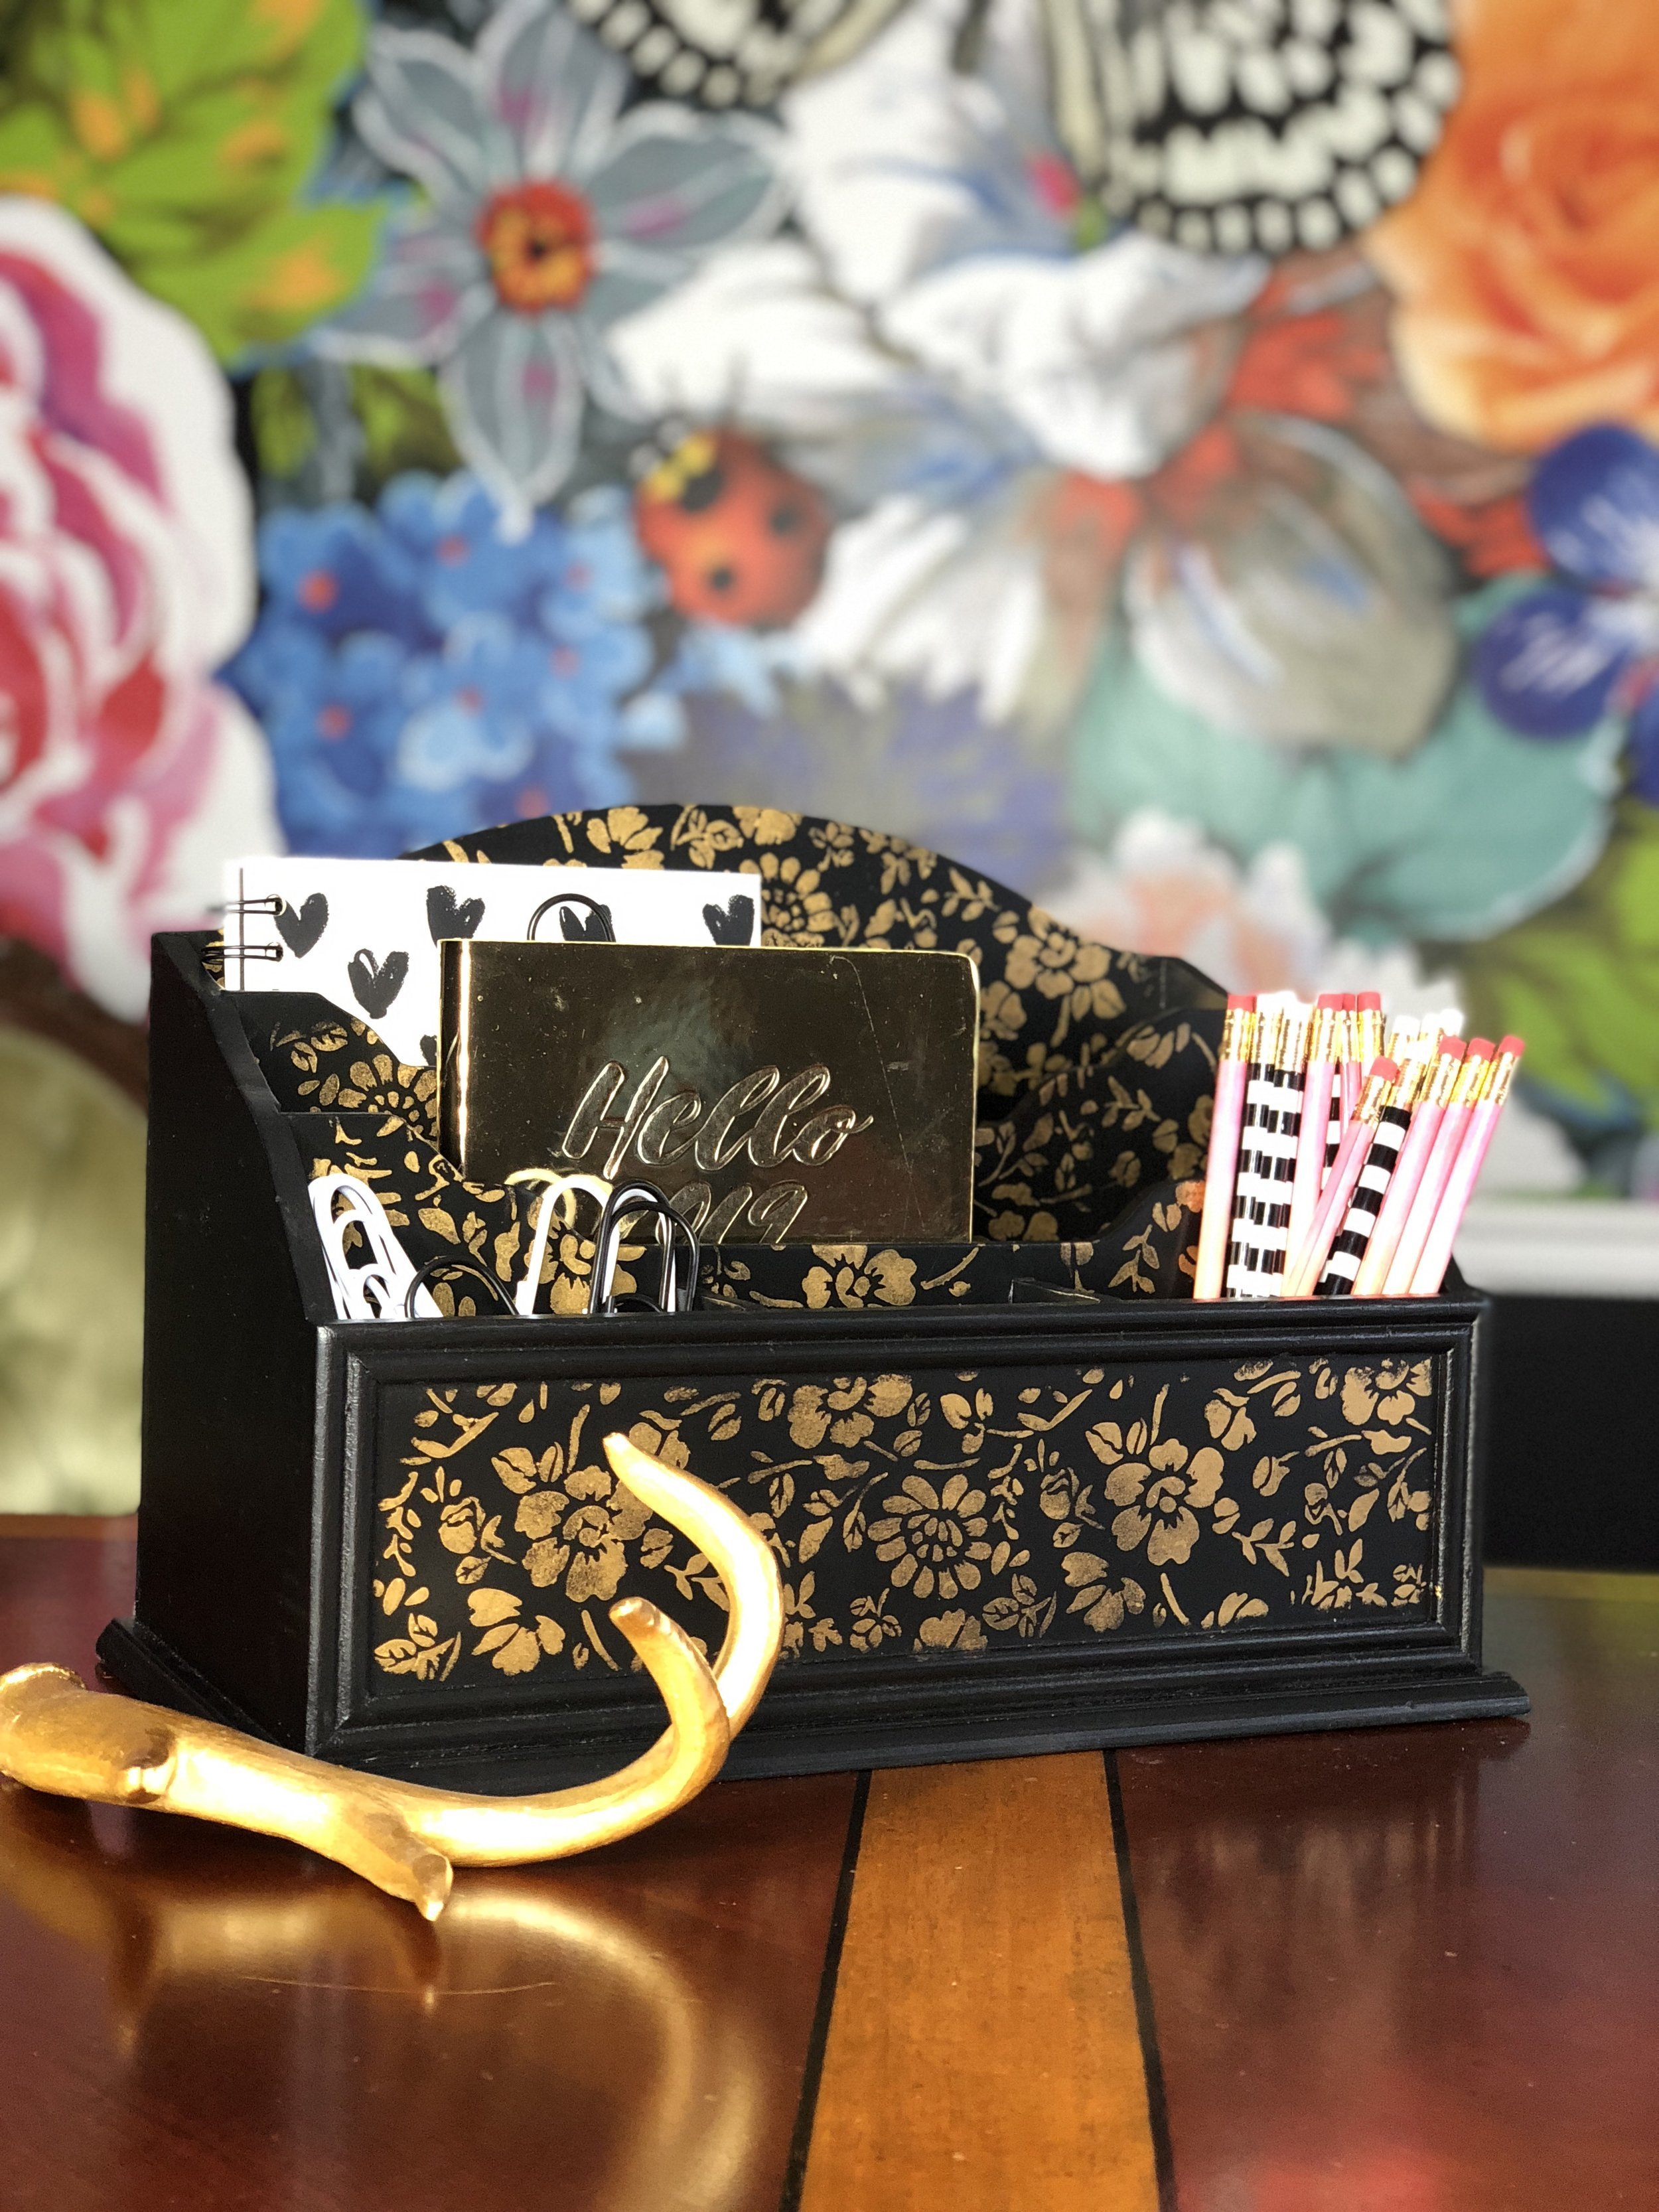 Magdalena of  Secret Garden Chic  customized drab gift boxes and gave them a fabulous face lift. She used a paste with the stencil rolls on the top to add a pretty dimensional pattern. Not only are these fabulous for gift giving but they can be used as home decor accents too.